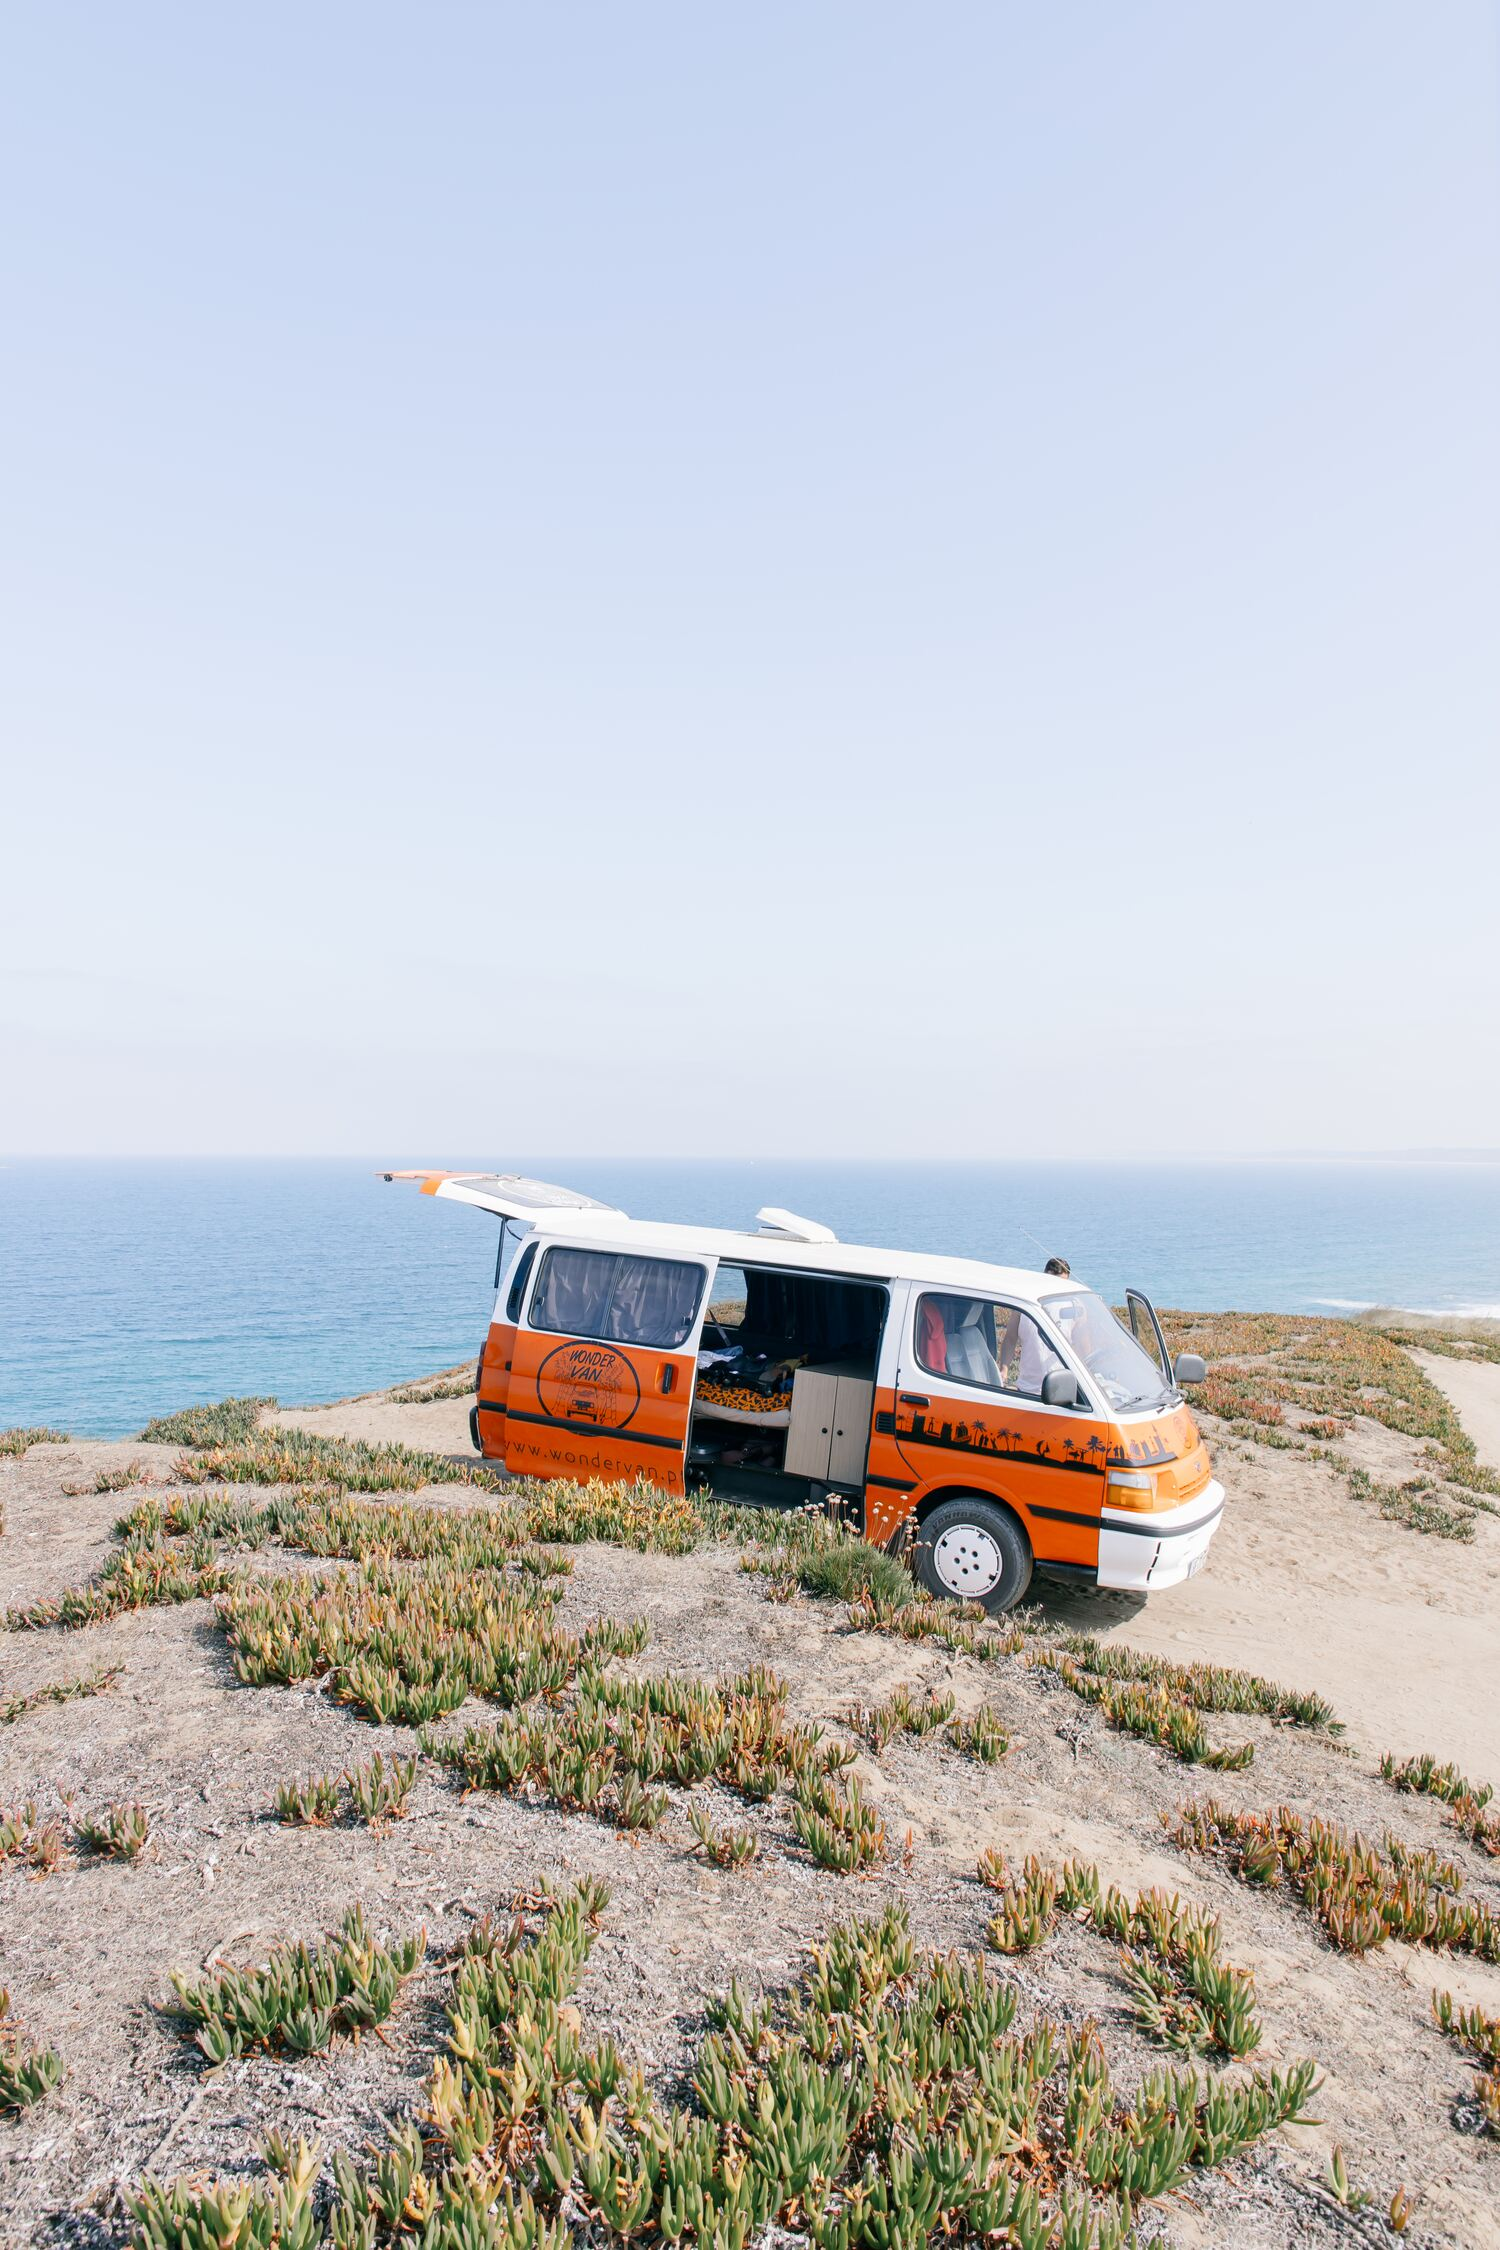 Travelling in a van is the best way to undertake a Portugal road trip